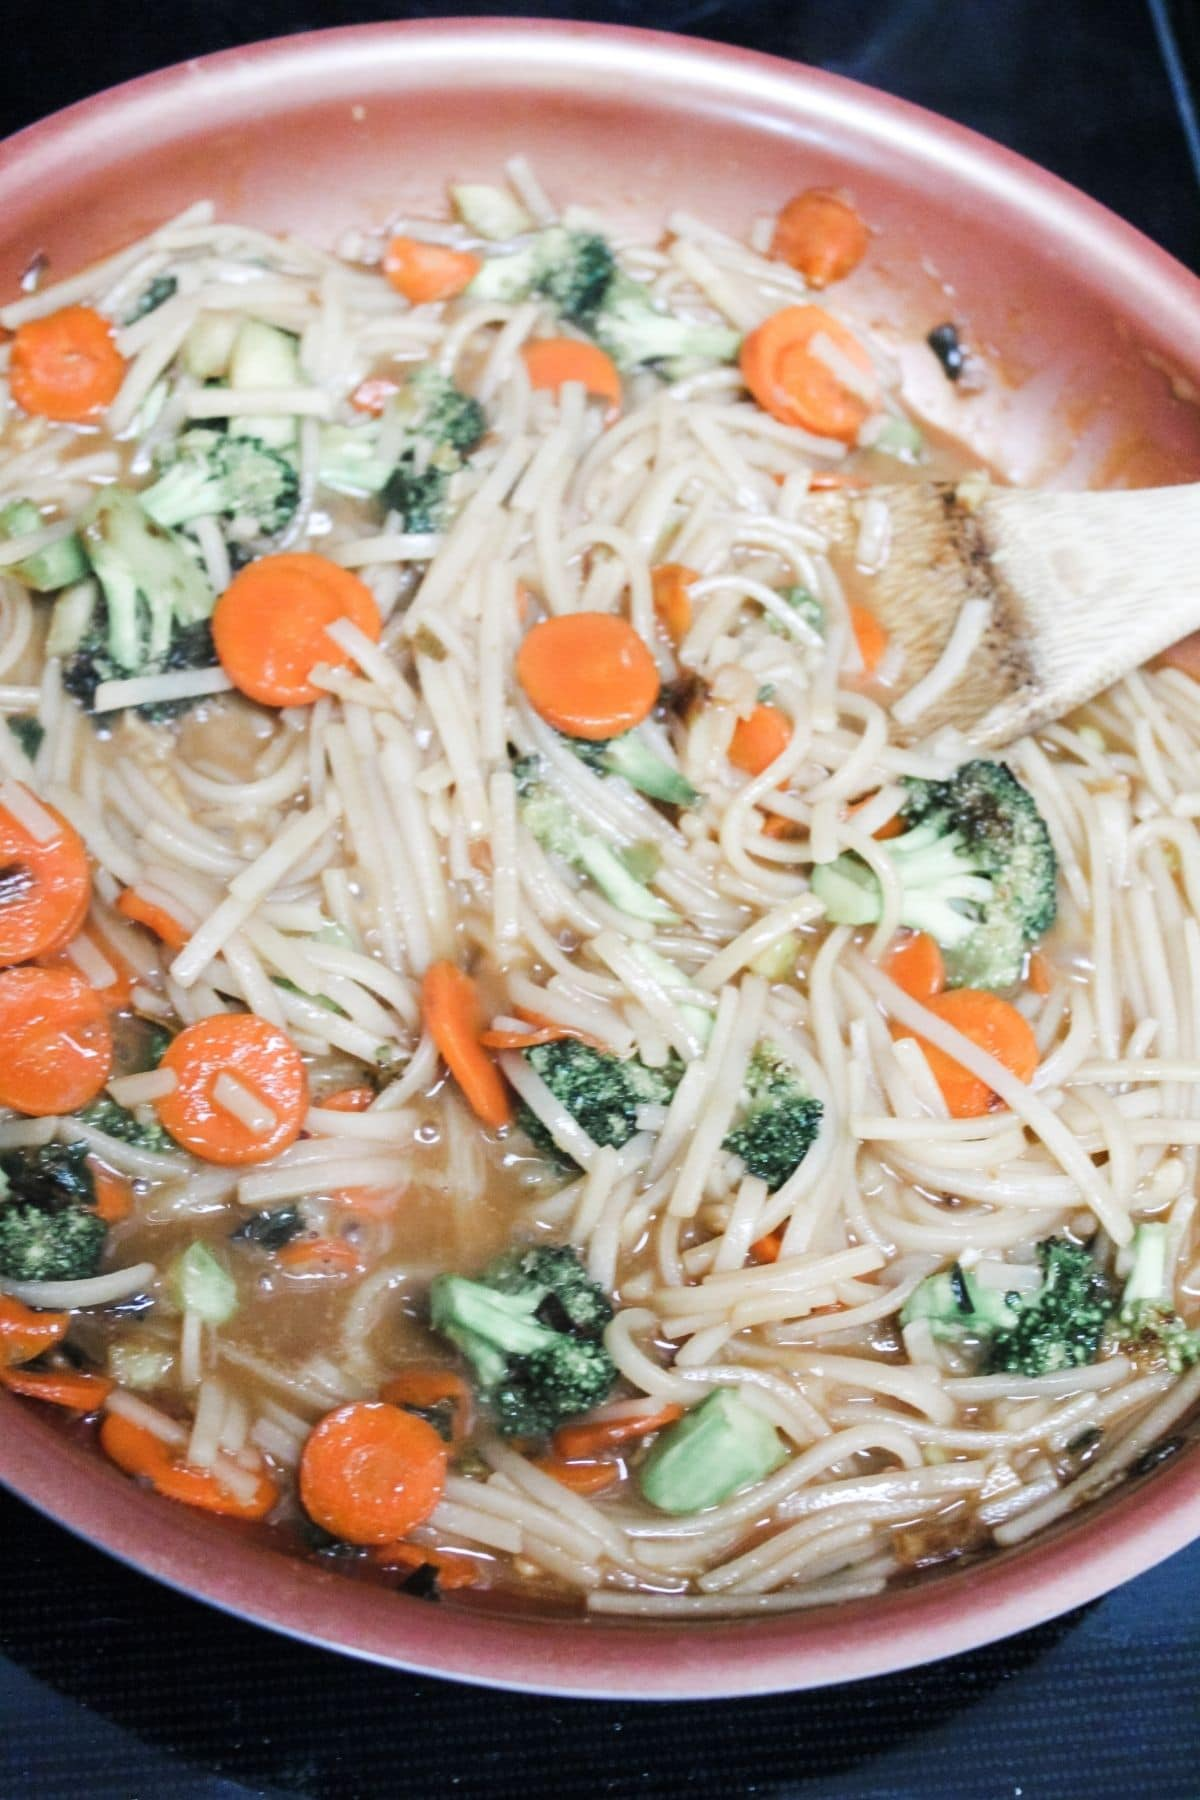 mix all of the pad thai ingredients and stirring it around in frying pan